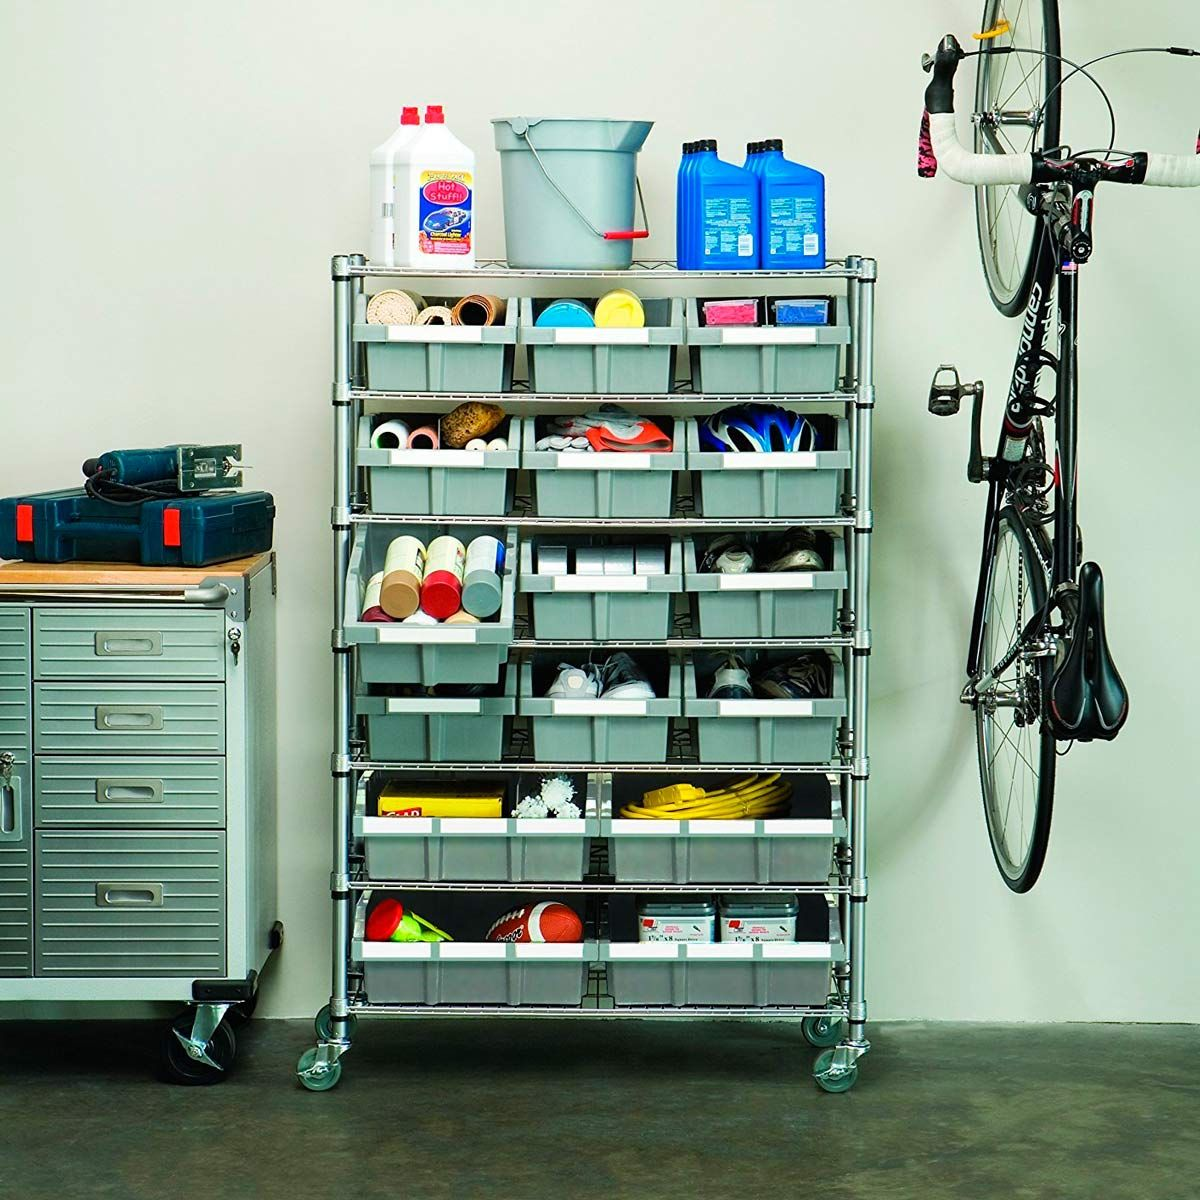 100 Best Storage Containers To Get Your House In Order